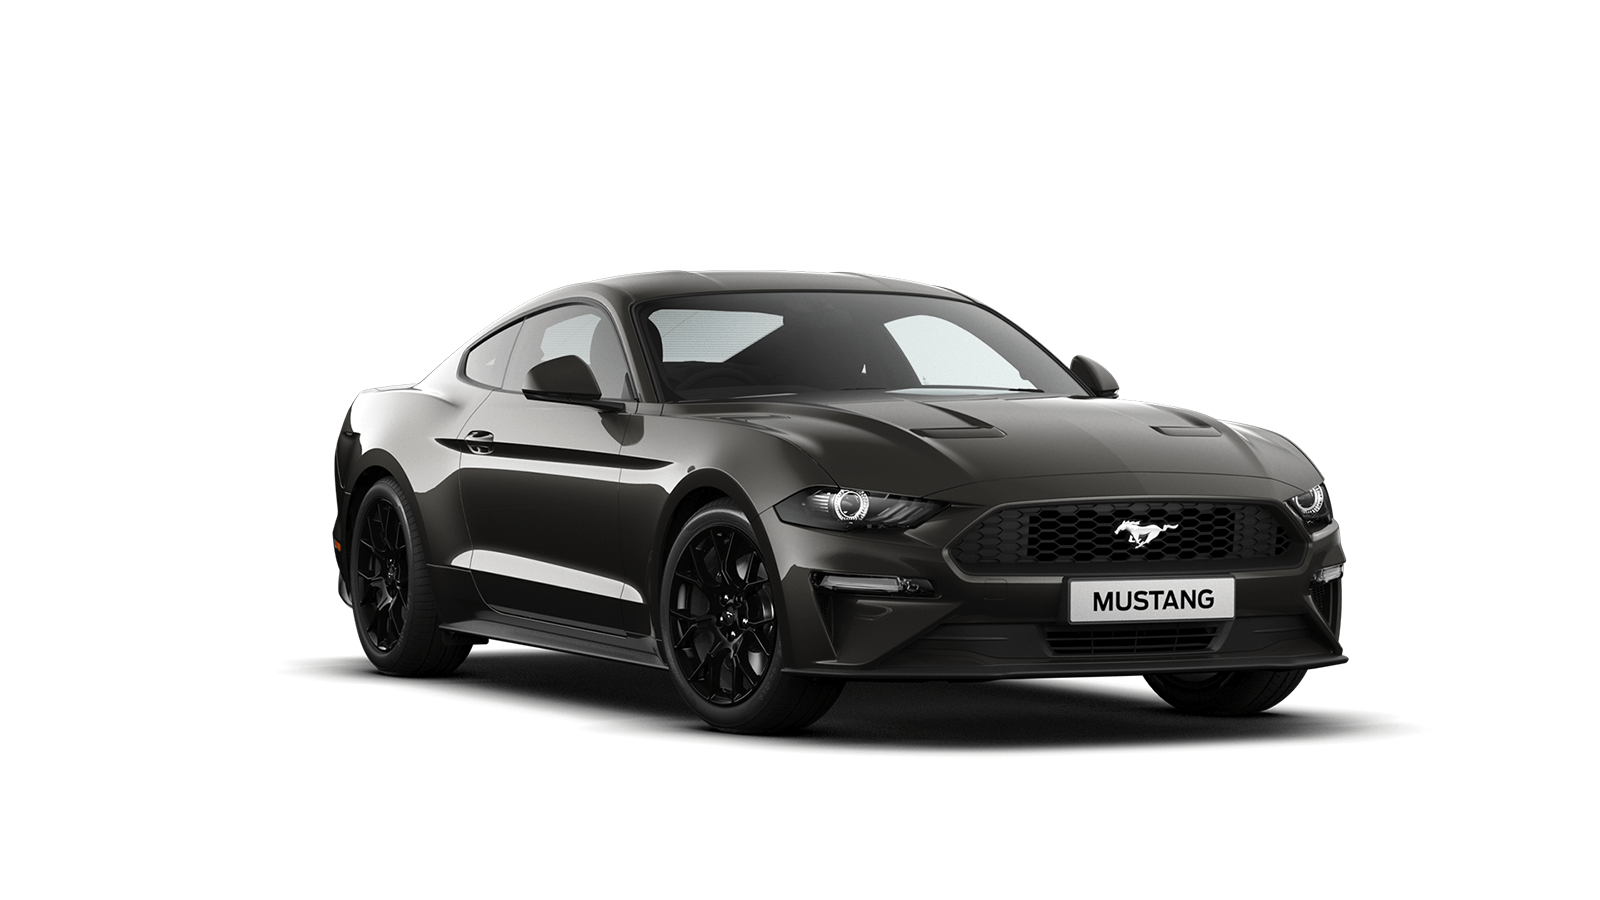 NEW MUSTANG 2.3 EcoBoost Fastback in Magnetic